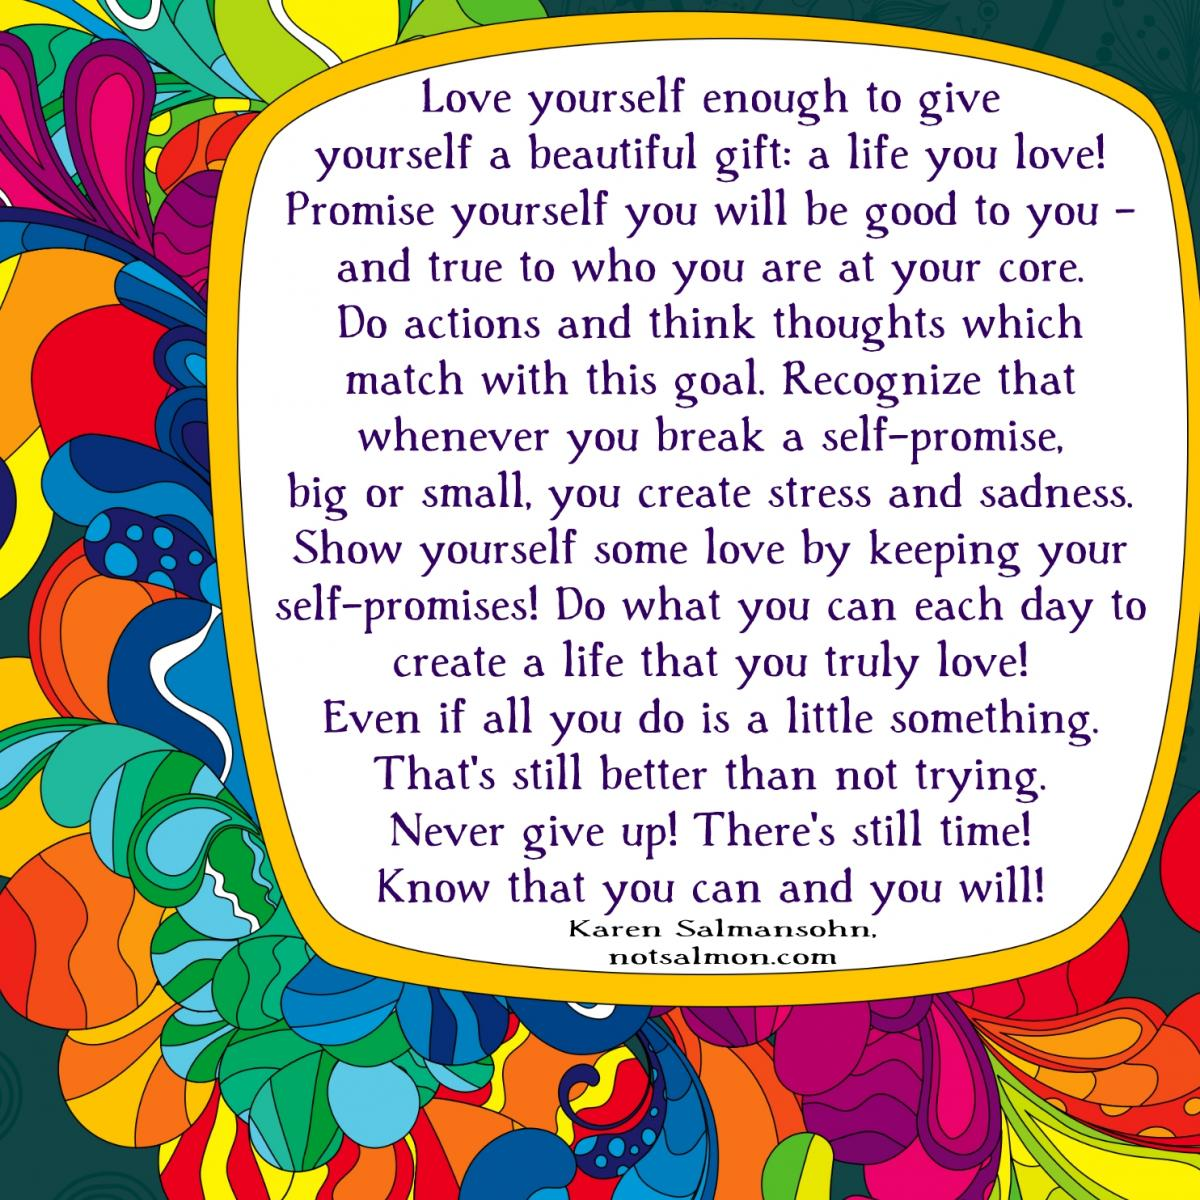 40 Funny Self Love Quotes: Love Yourself Enough To Give You A Beautiful Gift Karen